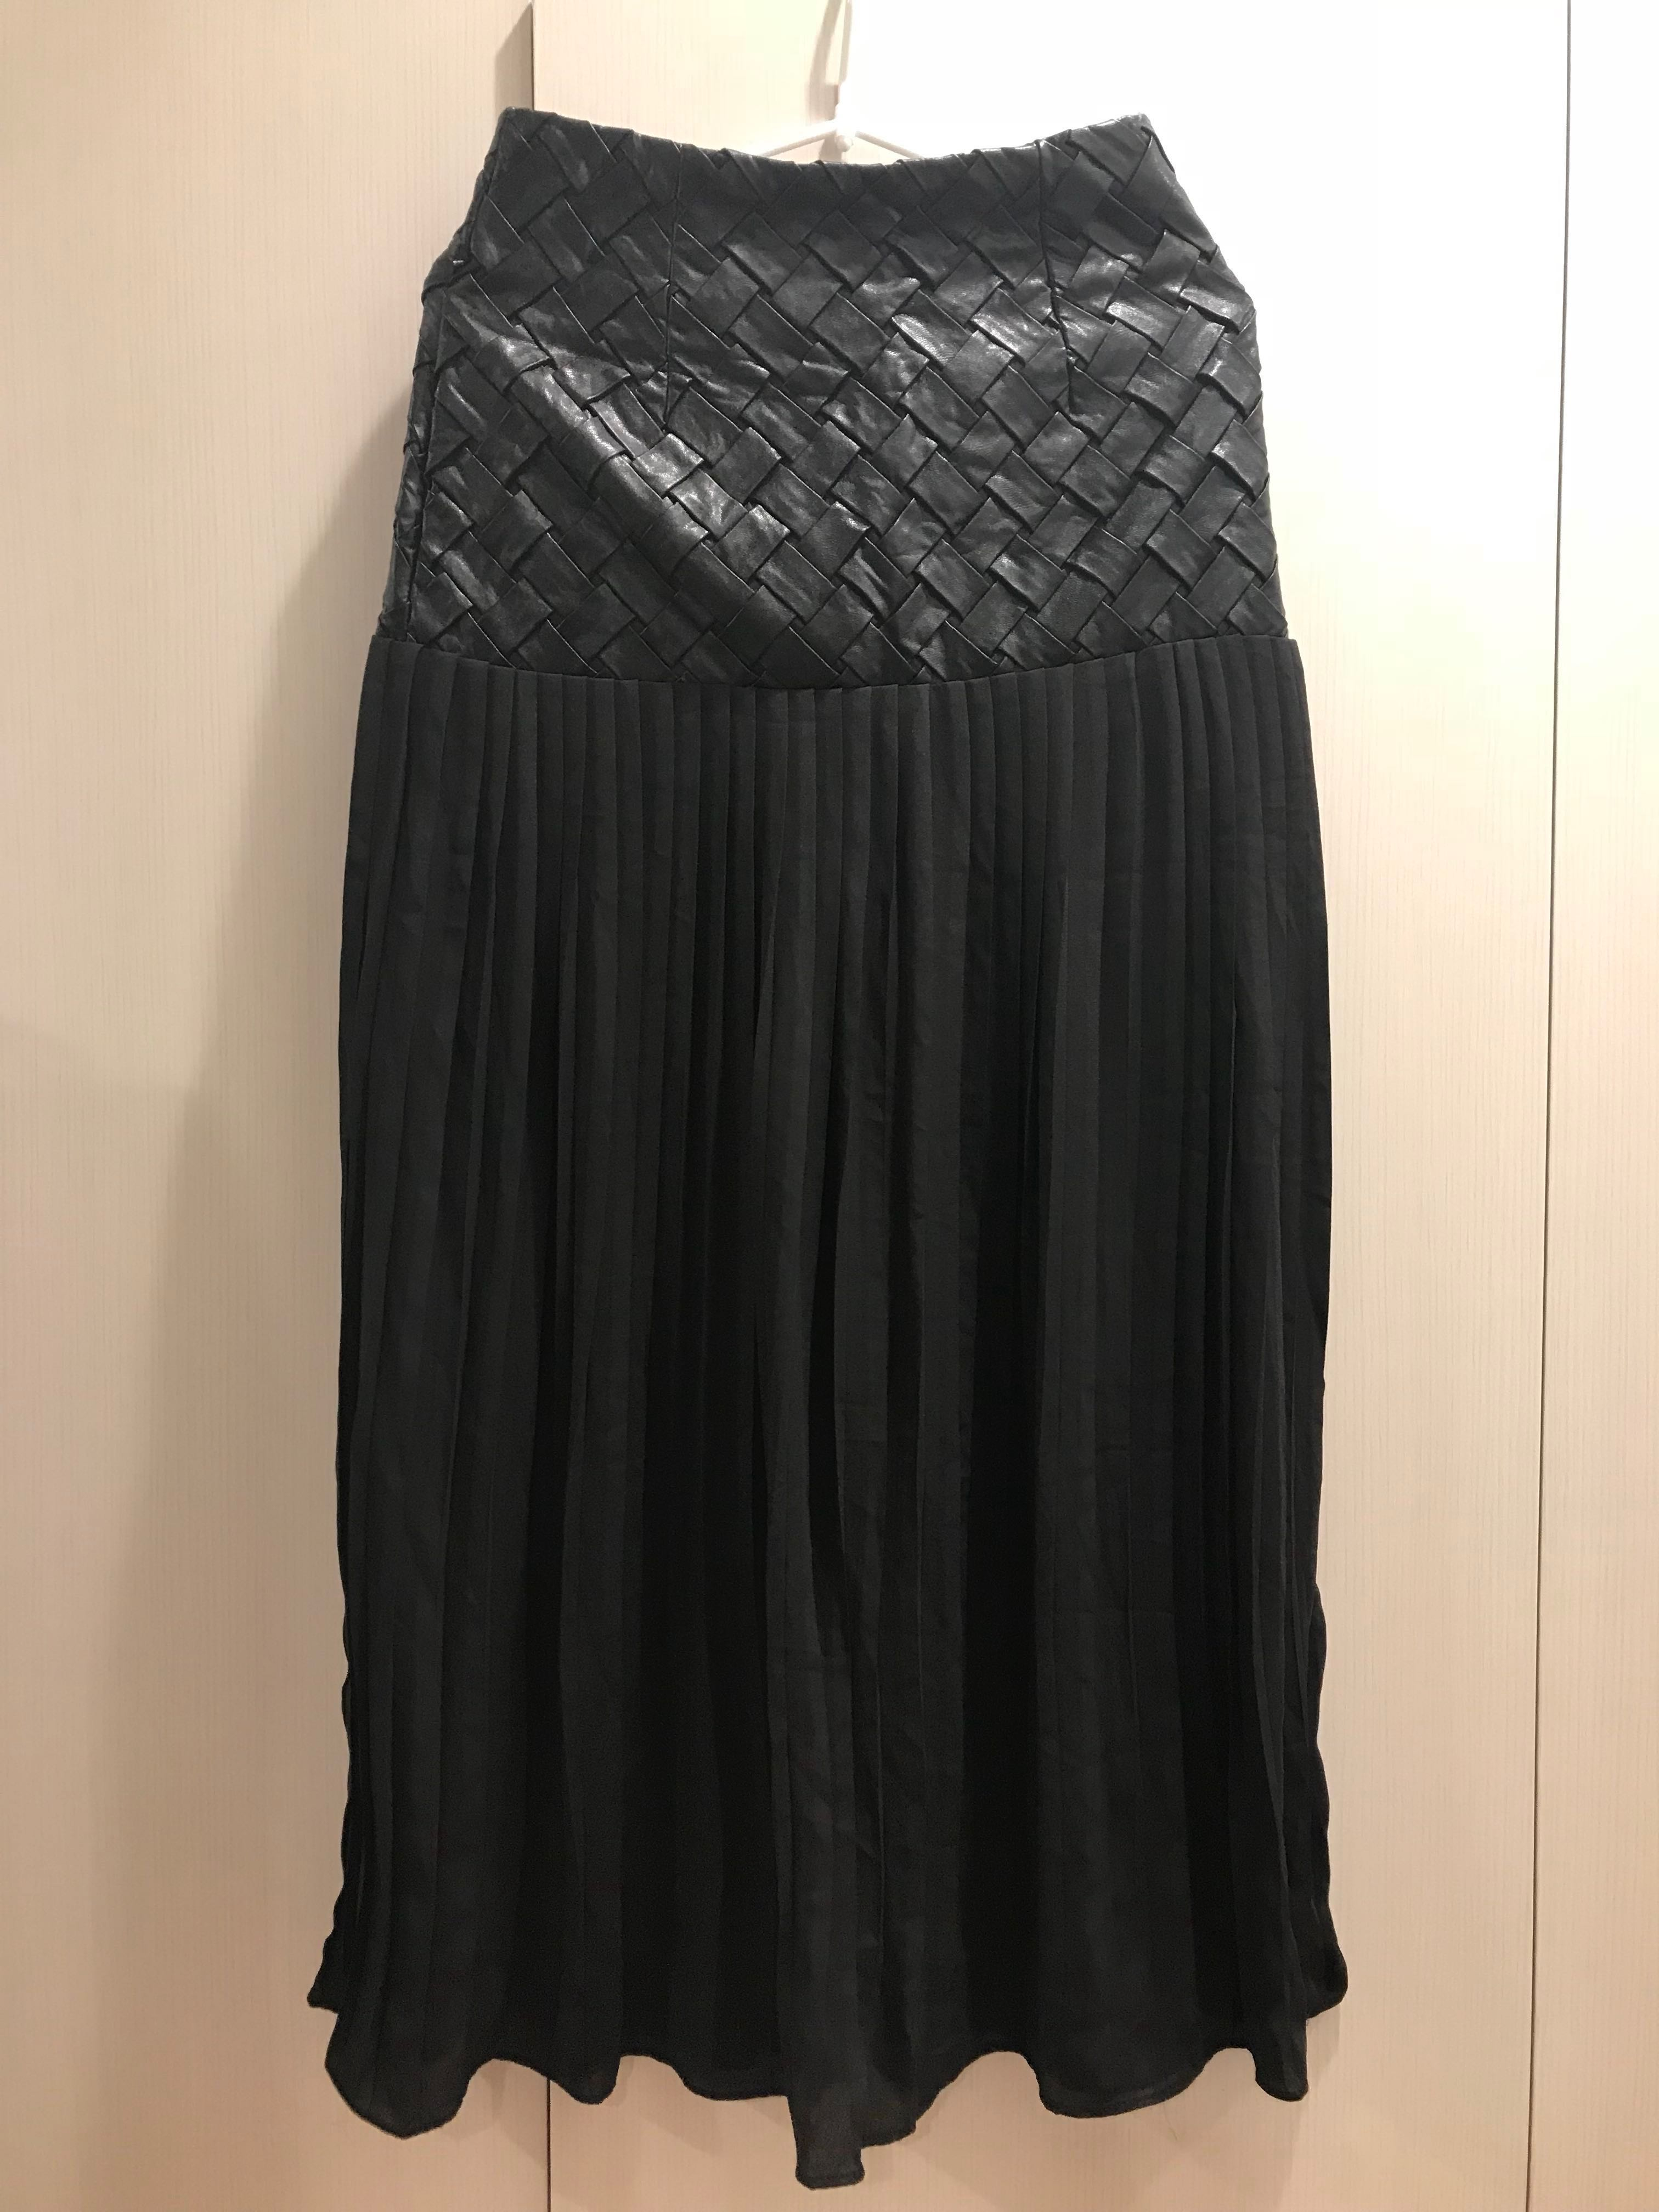 53959146d5 Black leather and chiffon pleated midi skirt BNWT, Women's Fashion ...